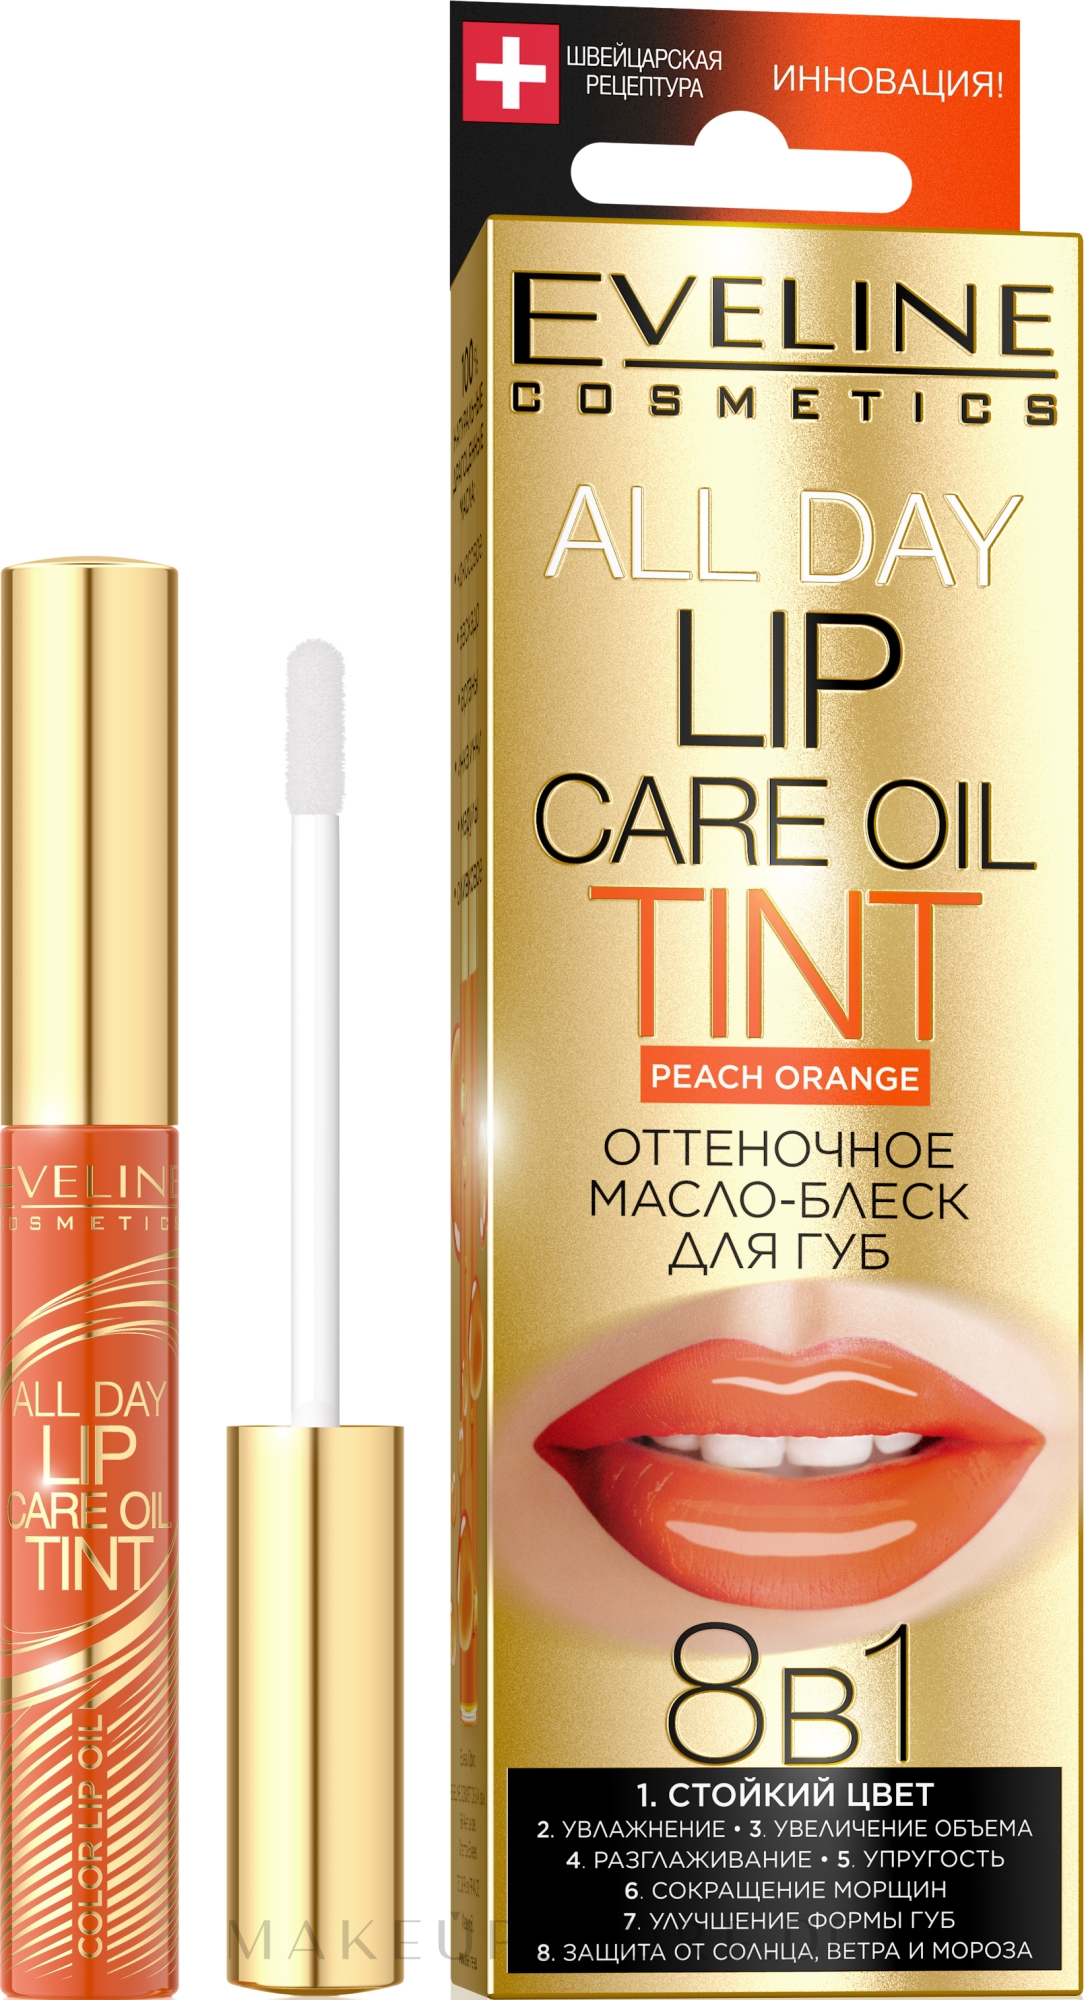 Lippenpflege-Öl mit Farbe - Eveline Cosmetics All Day Lip Care Oil Tint — Bild 06 - Peach Orange